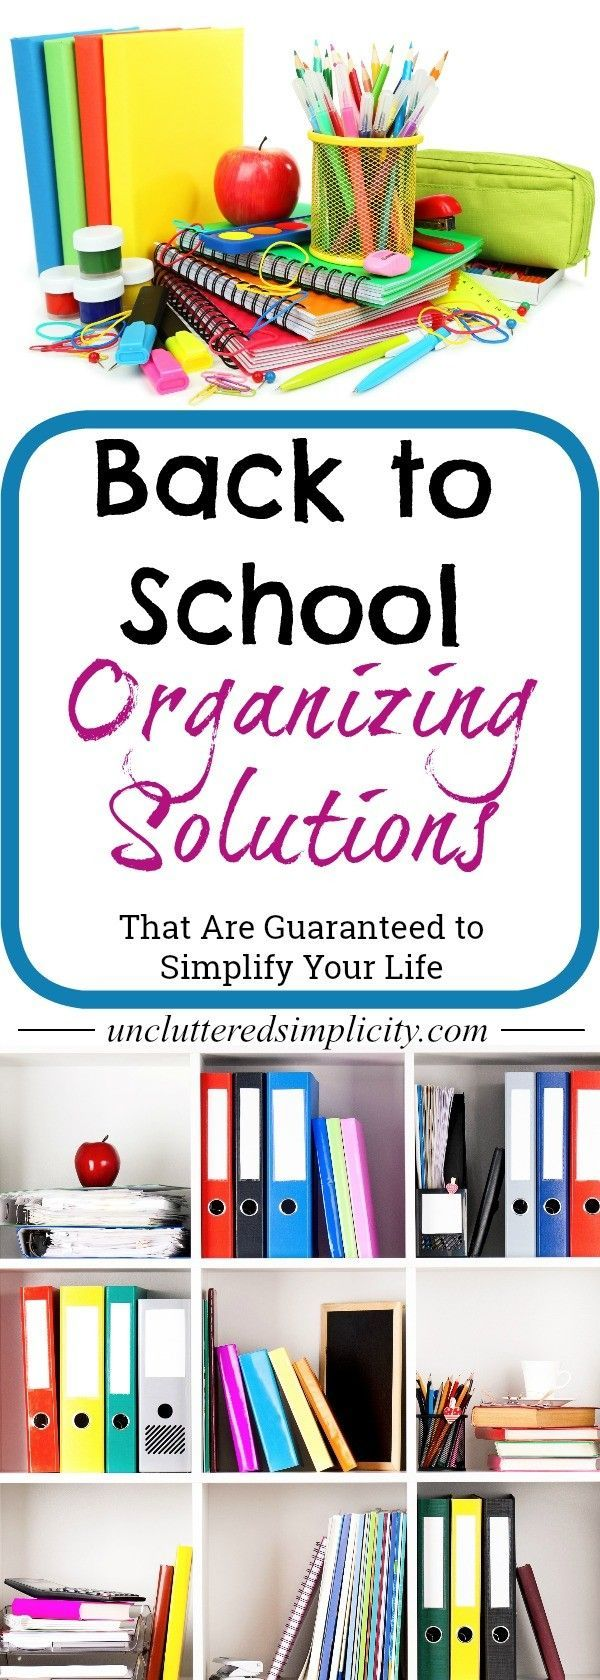 back to school organizing | school supply storage ideas | homeschool tips | command center ideas | how to create a homework station | organizing kids clothes | organizing school papers | via @CherylLemily